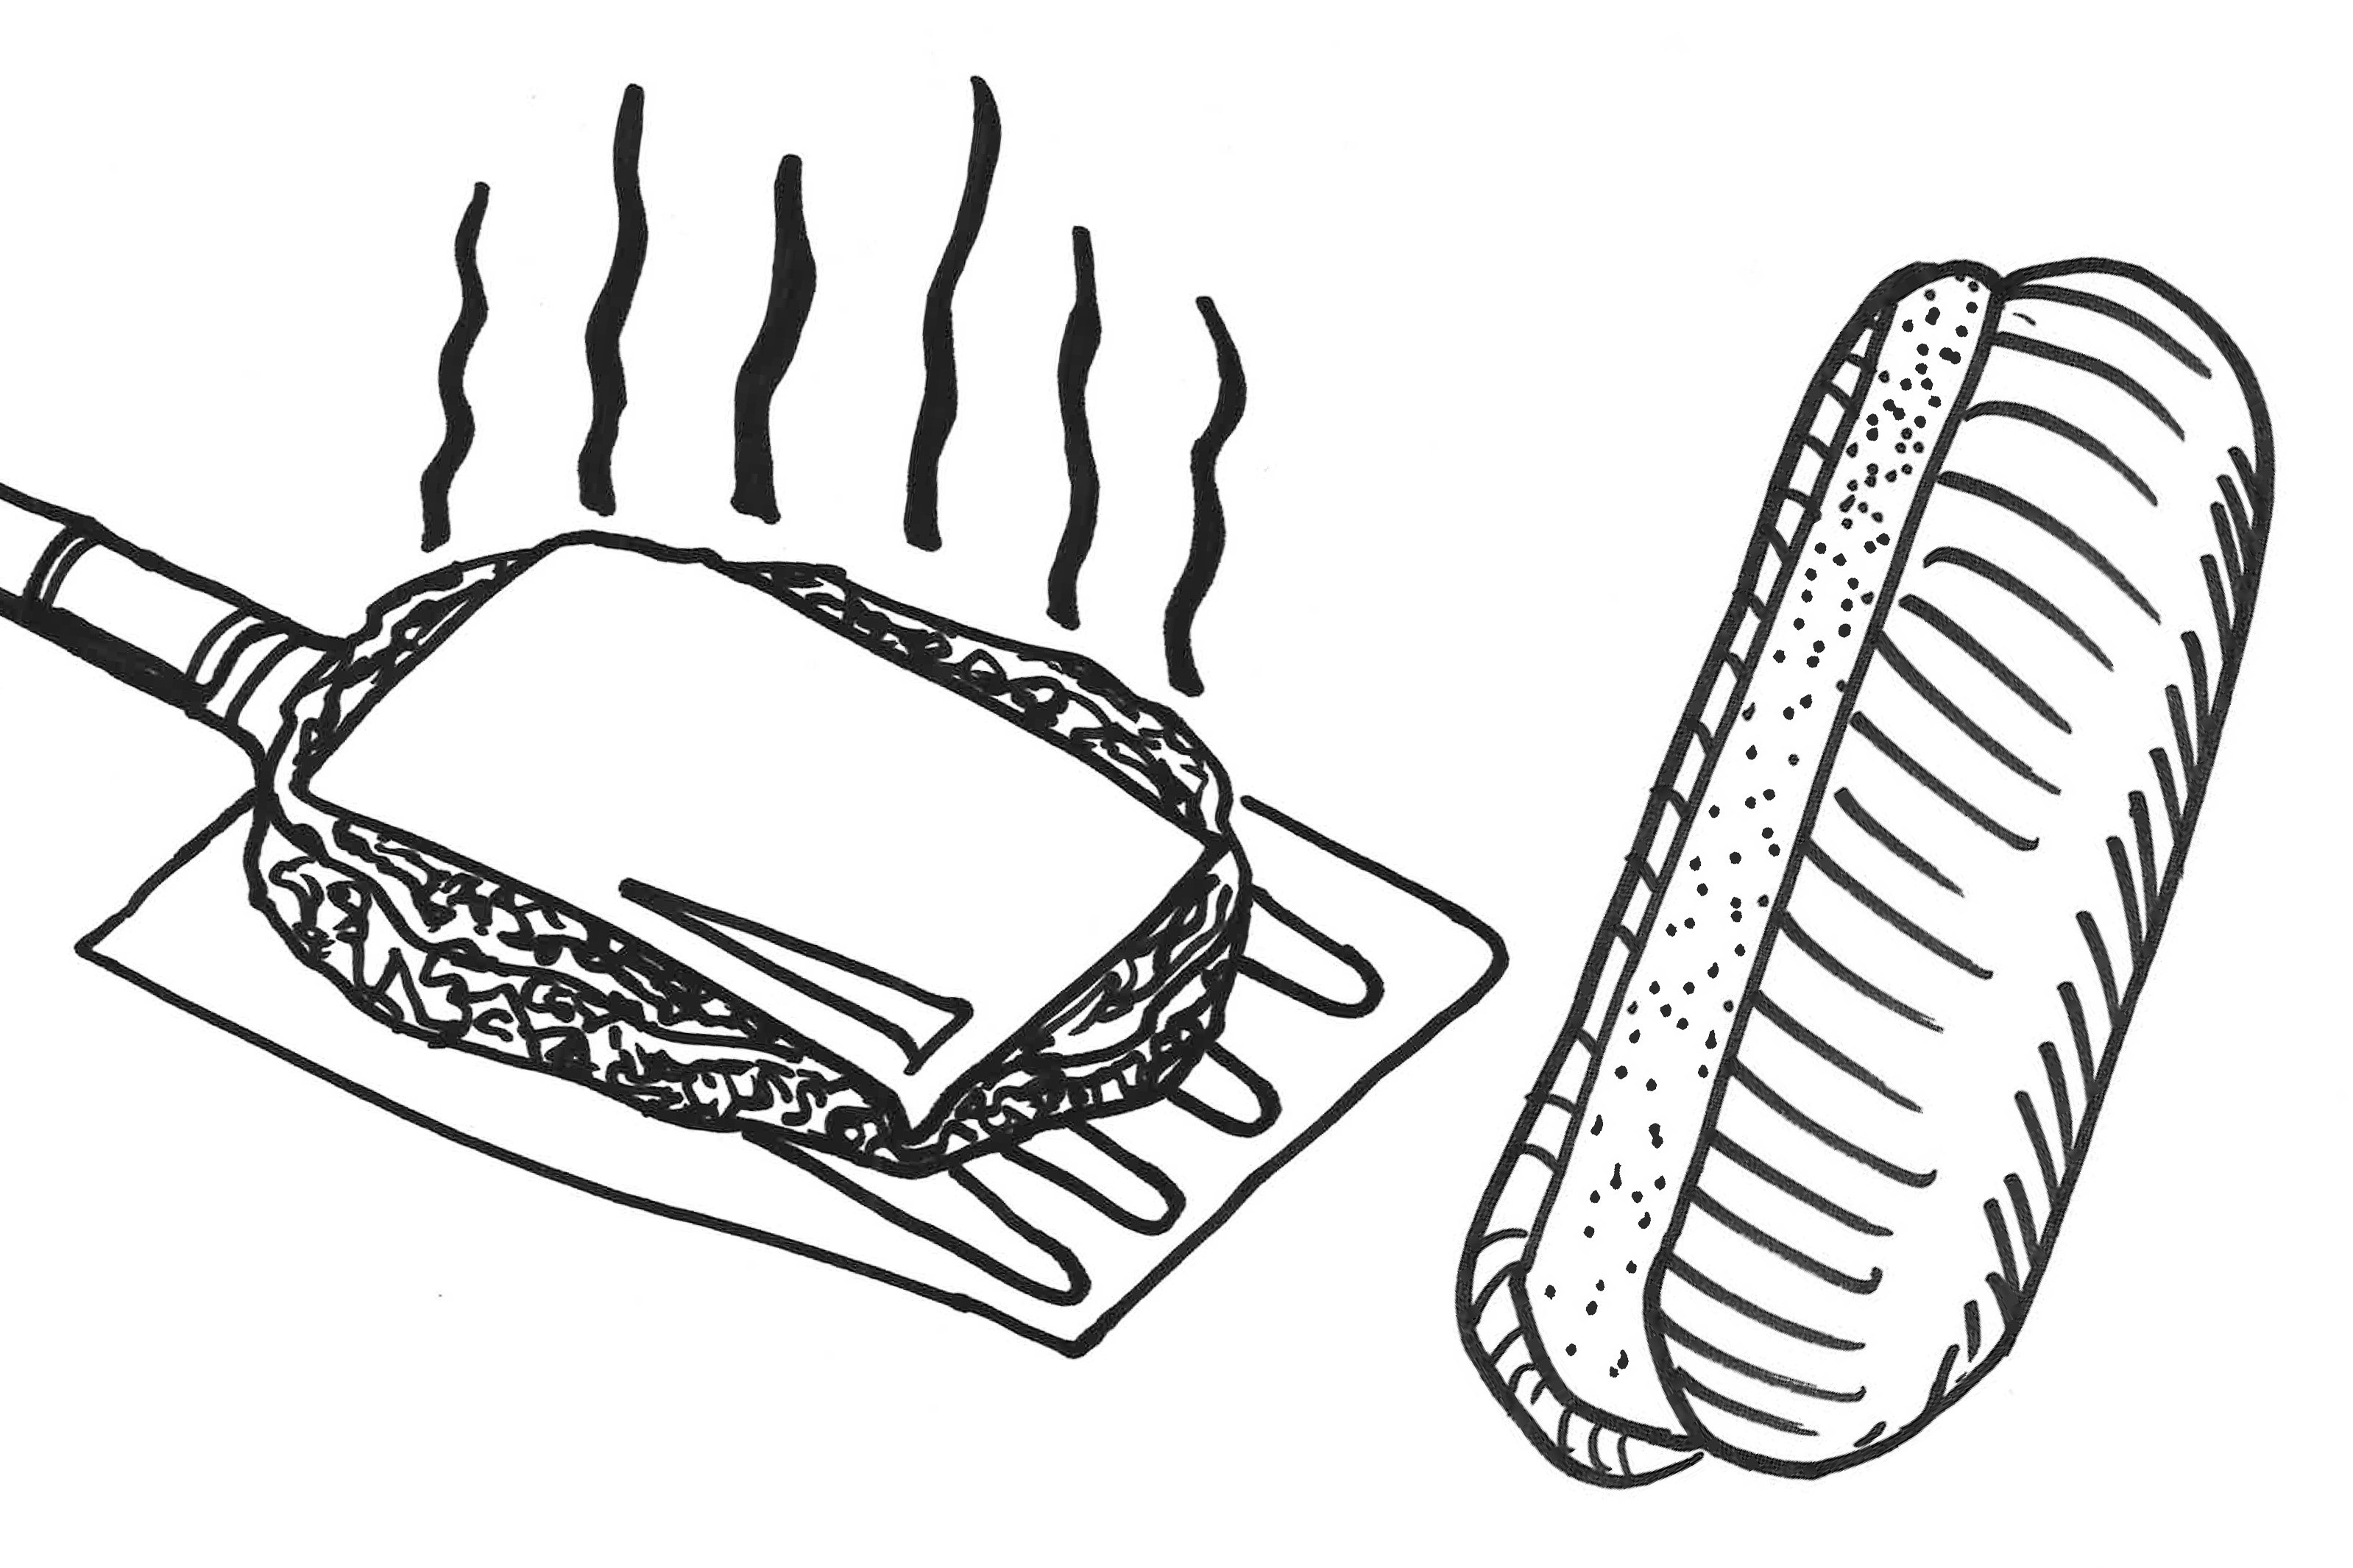 Hot dog in a bun line drawing clipart image royalty free stock What\'s the Correct Way to Eat a Hamburger on a Hot Dog Bun ... image royalty free stock